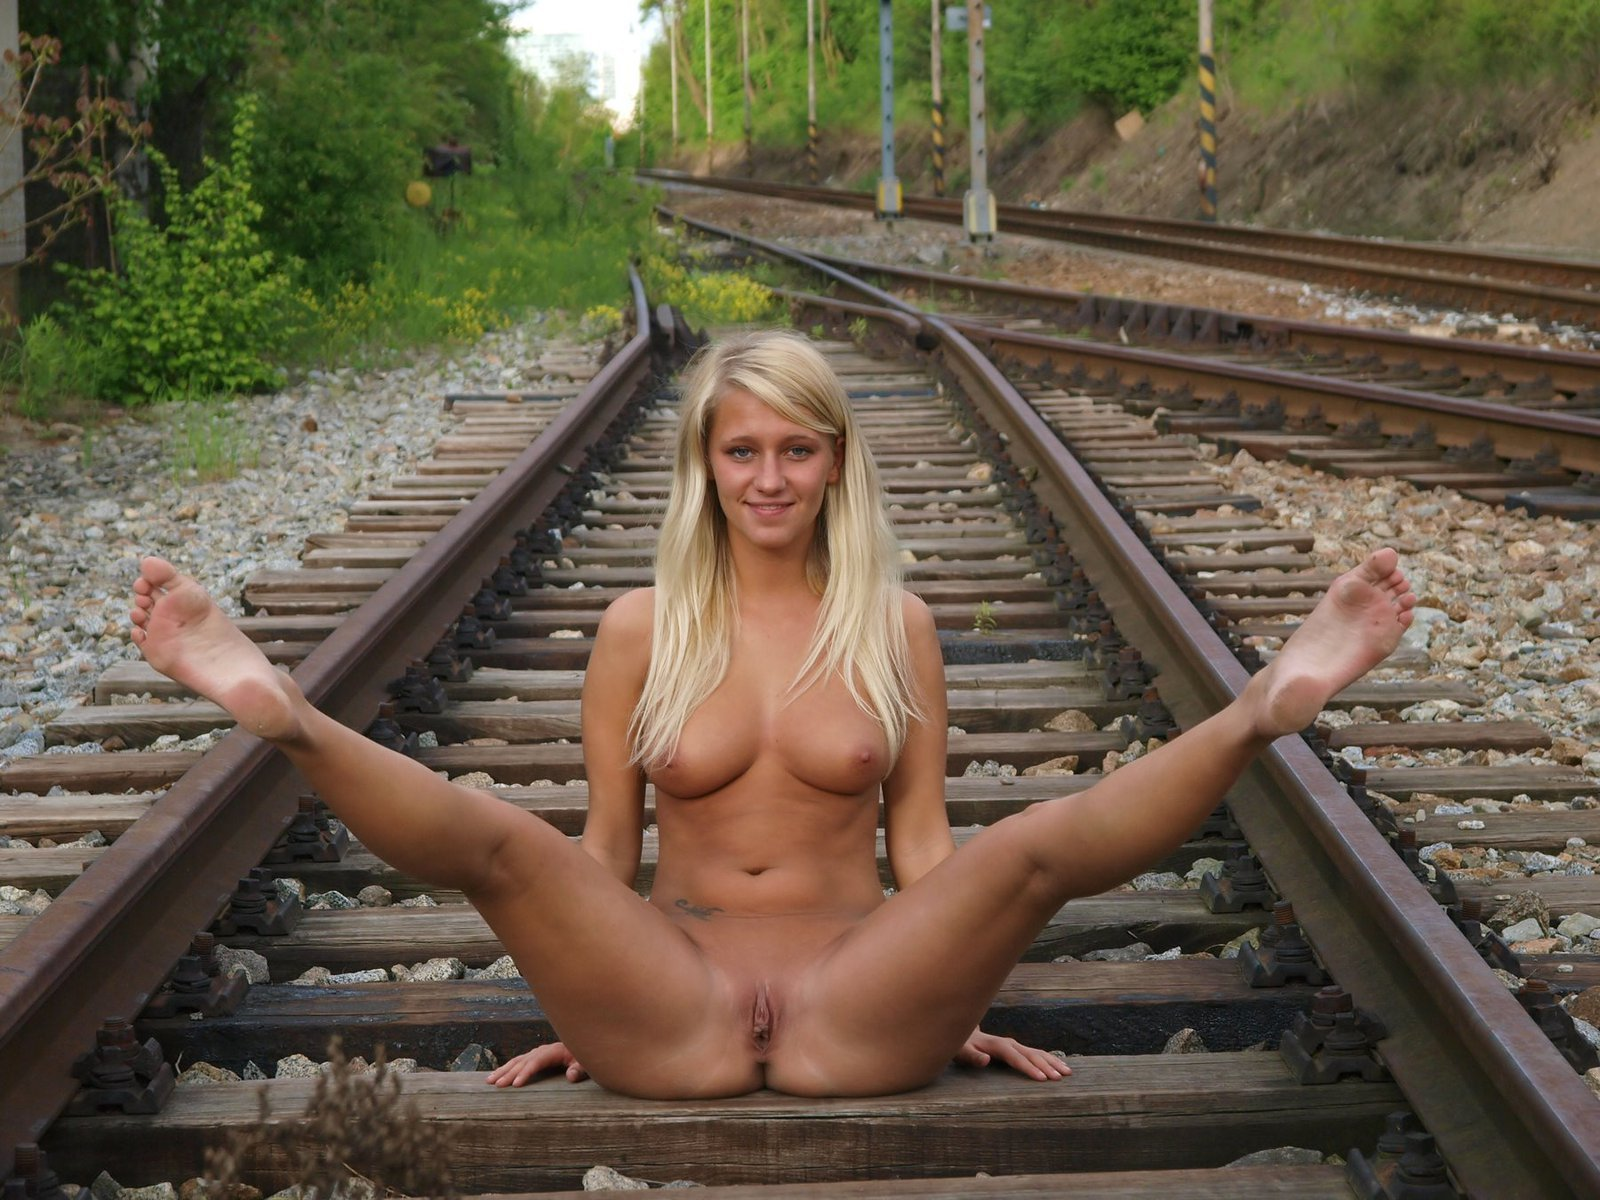 Like this terry amatuer nude alluring